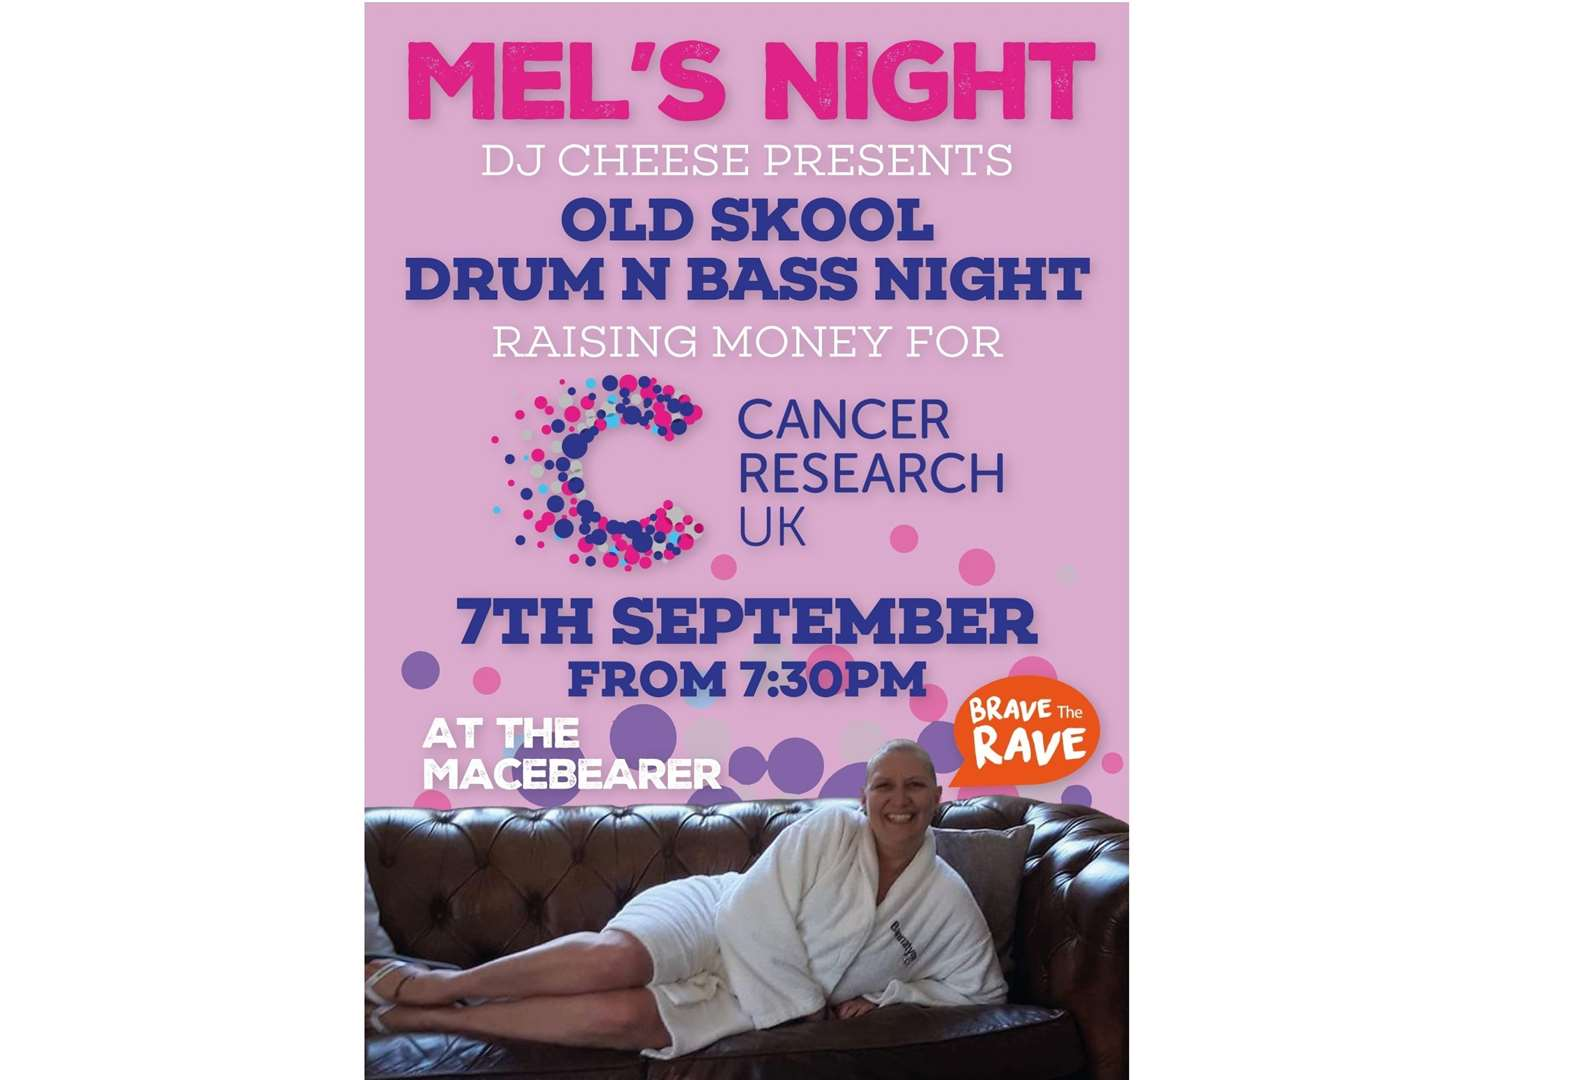 Bury St Edmunds pub regular inspires drum and bass night in aid of cancer charity